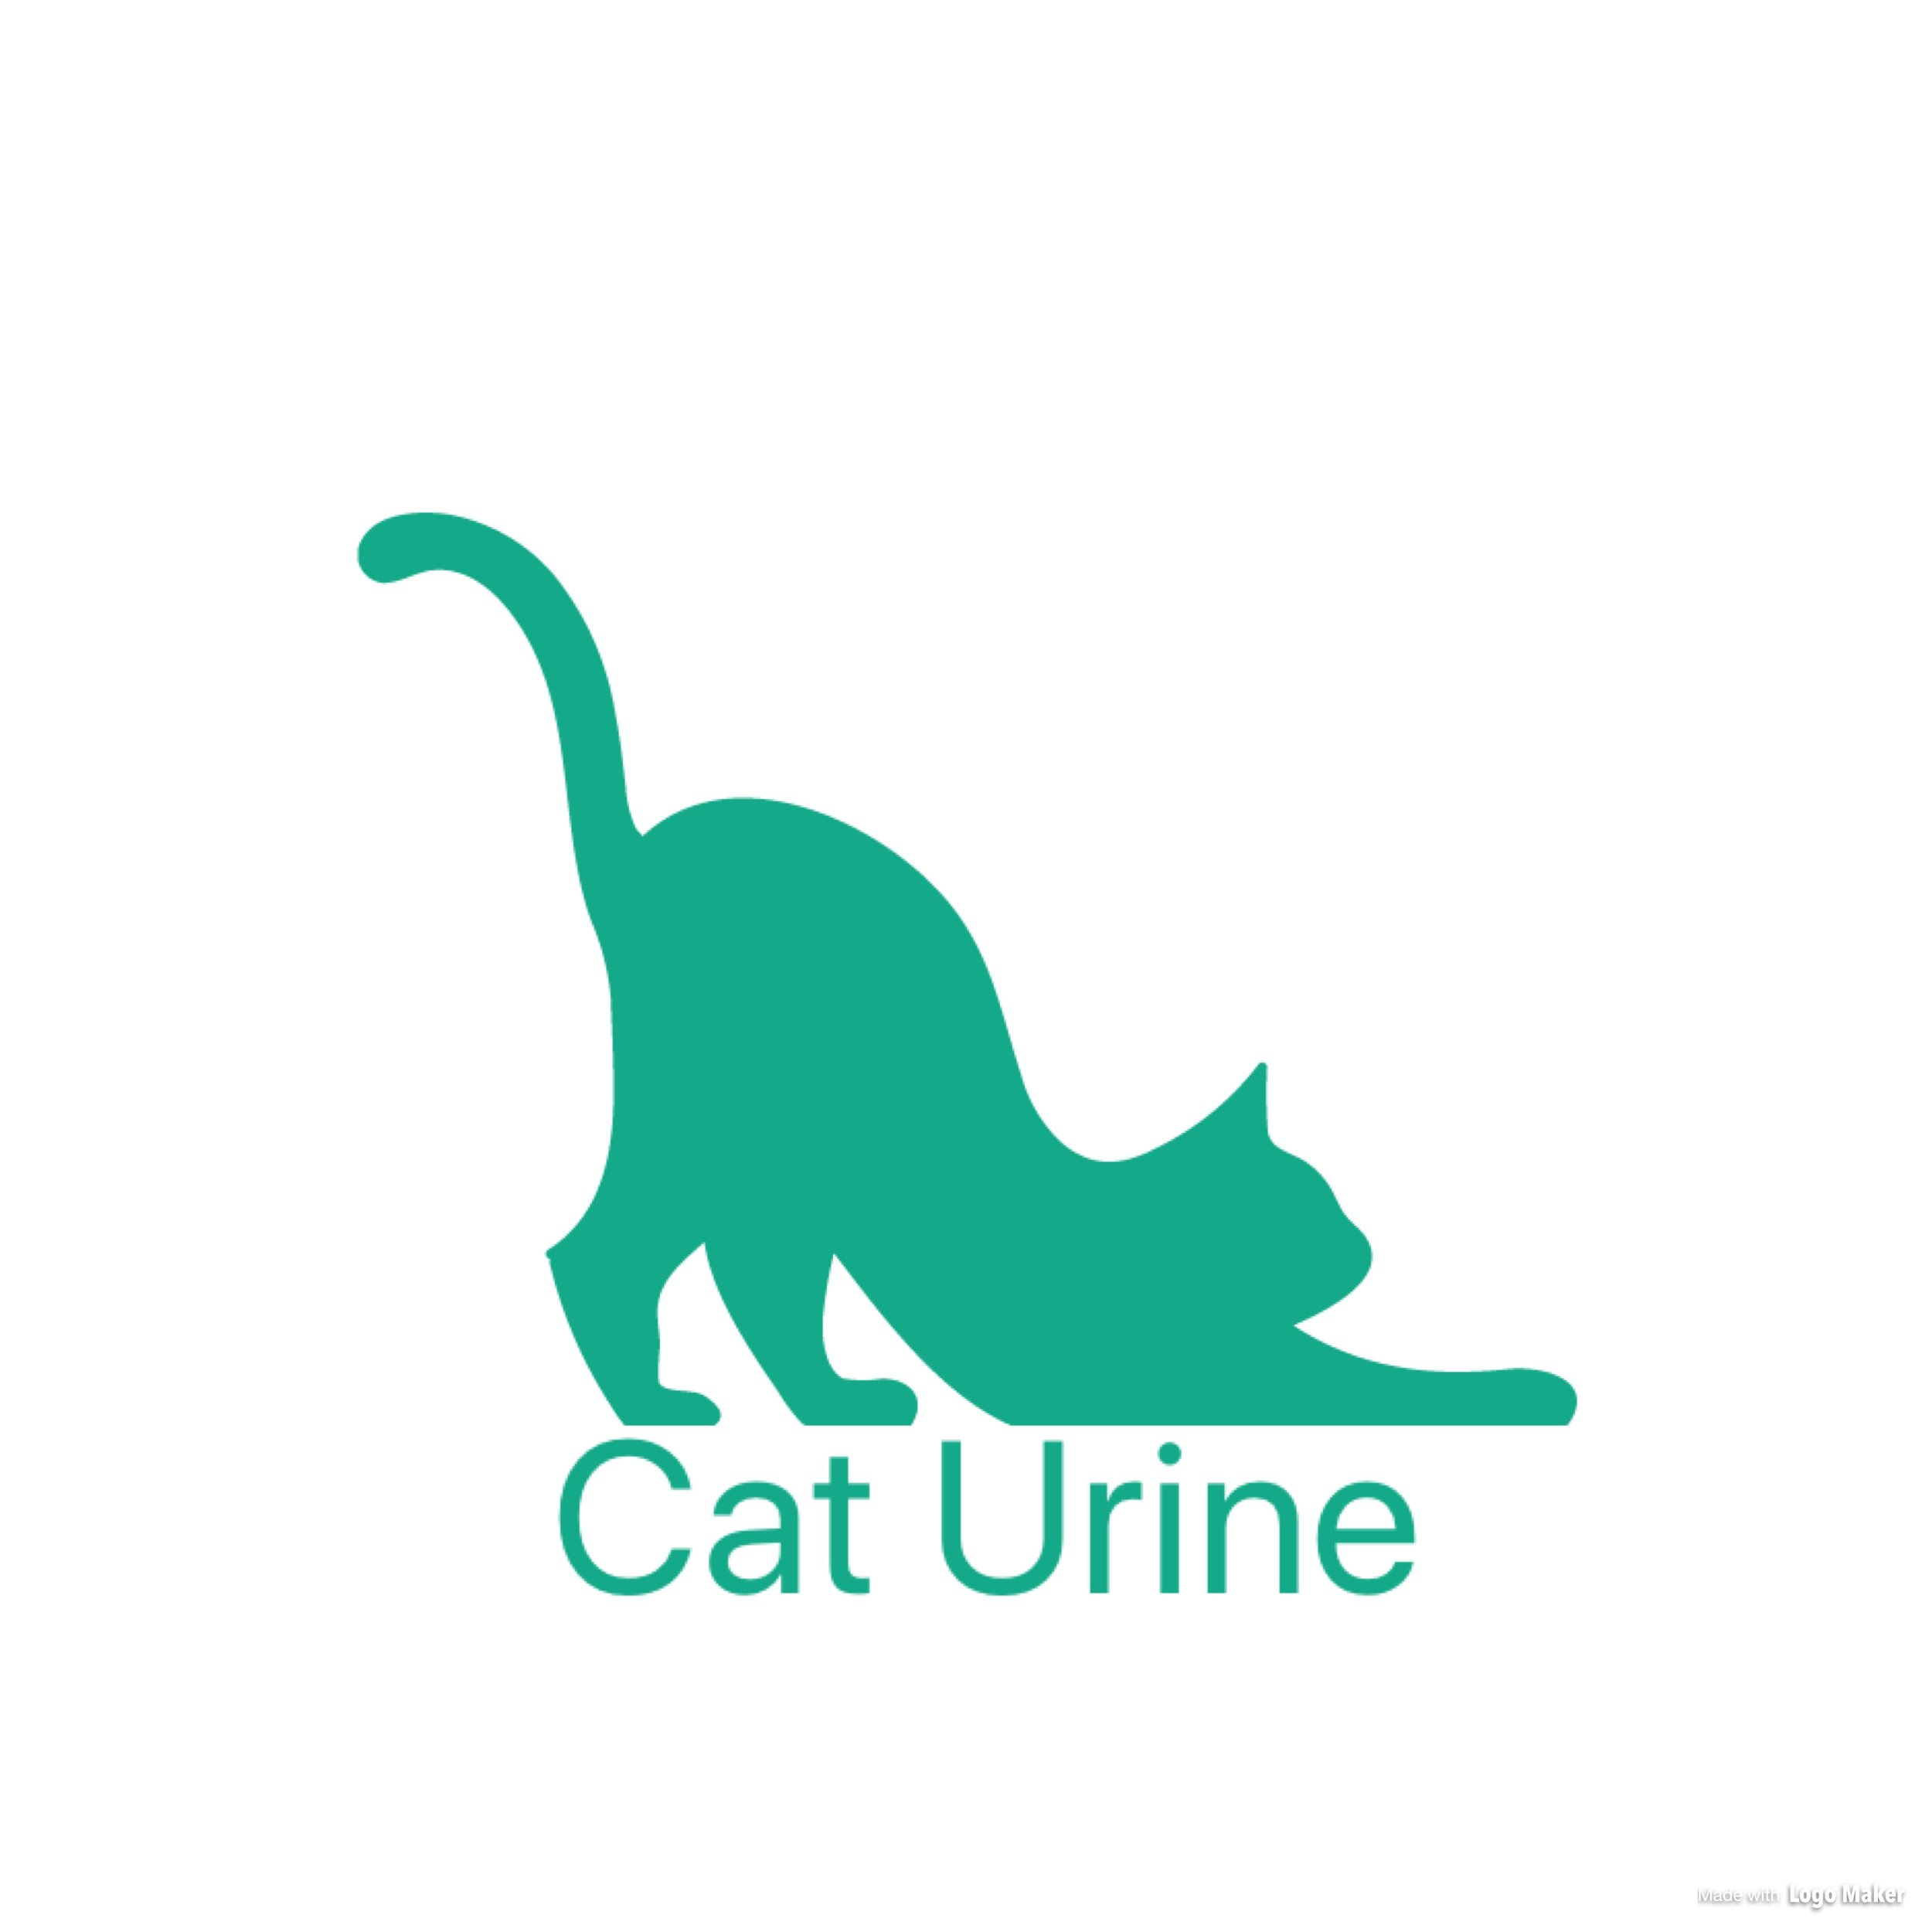 cat urine graphic .jpeg